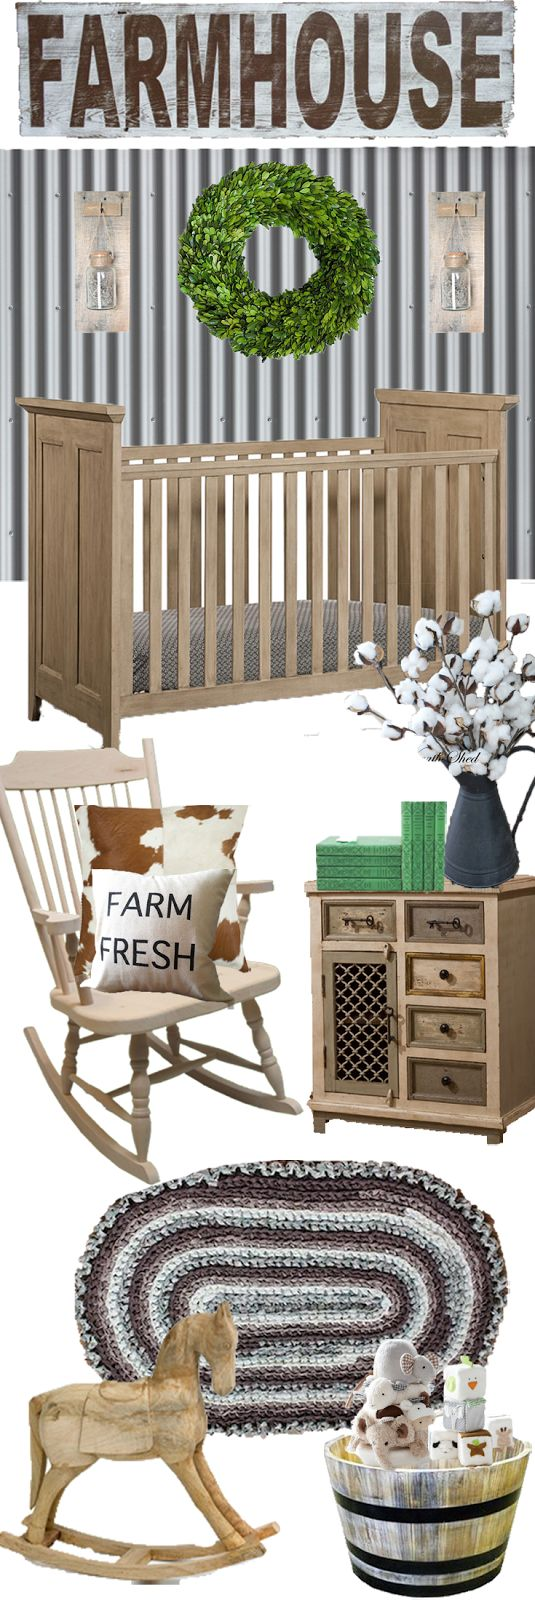 Farmhouse Themed Nursery//Fawn Over Baby